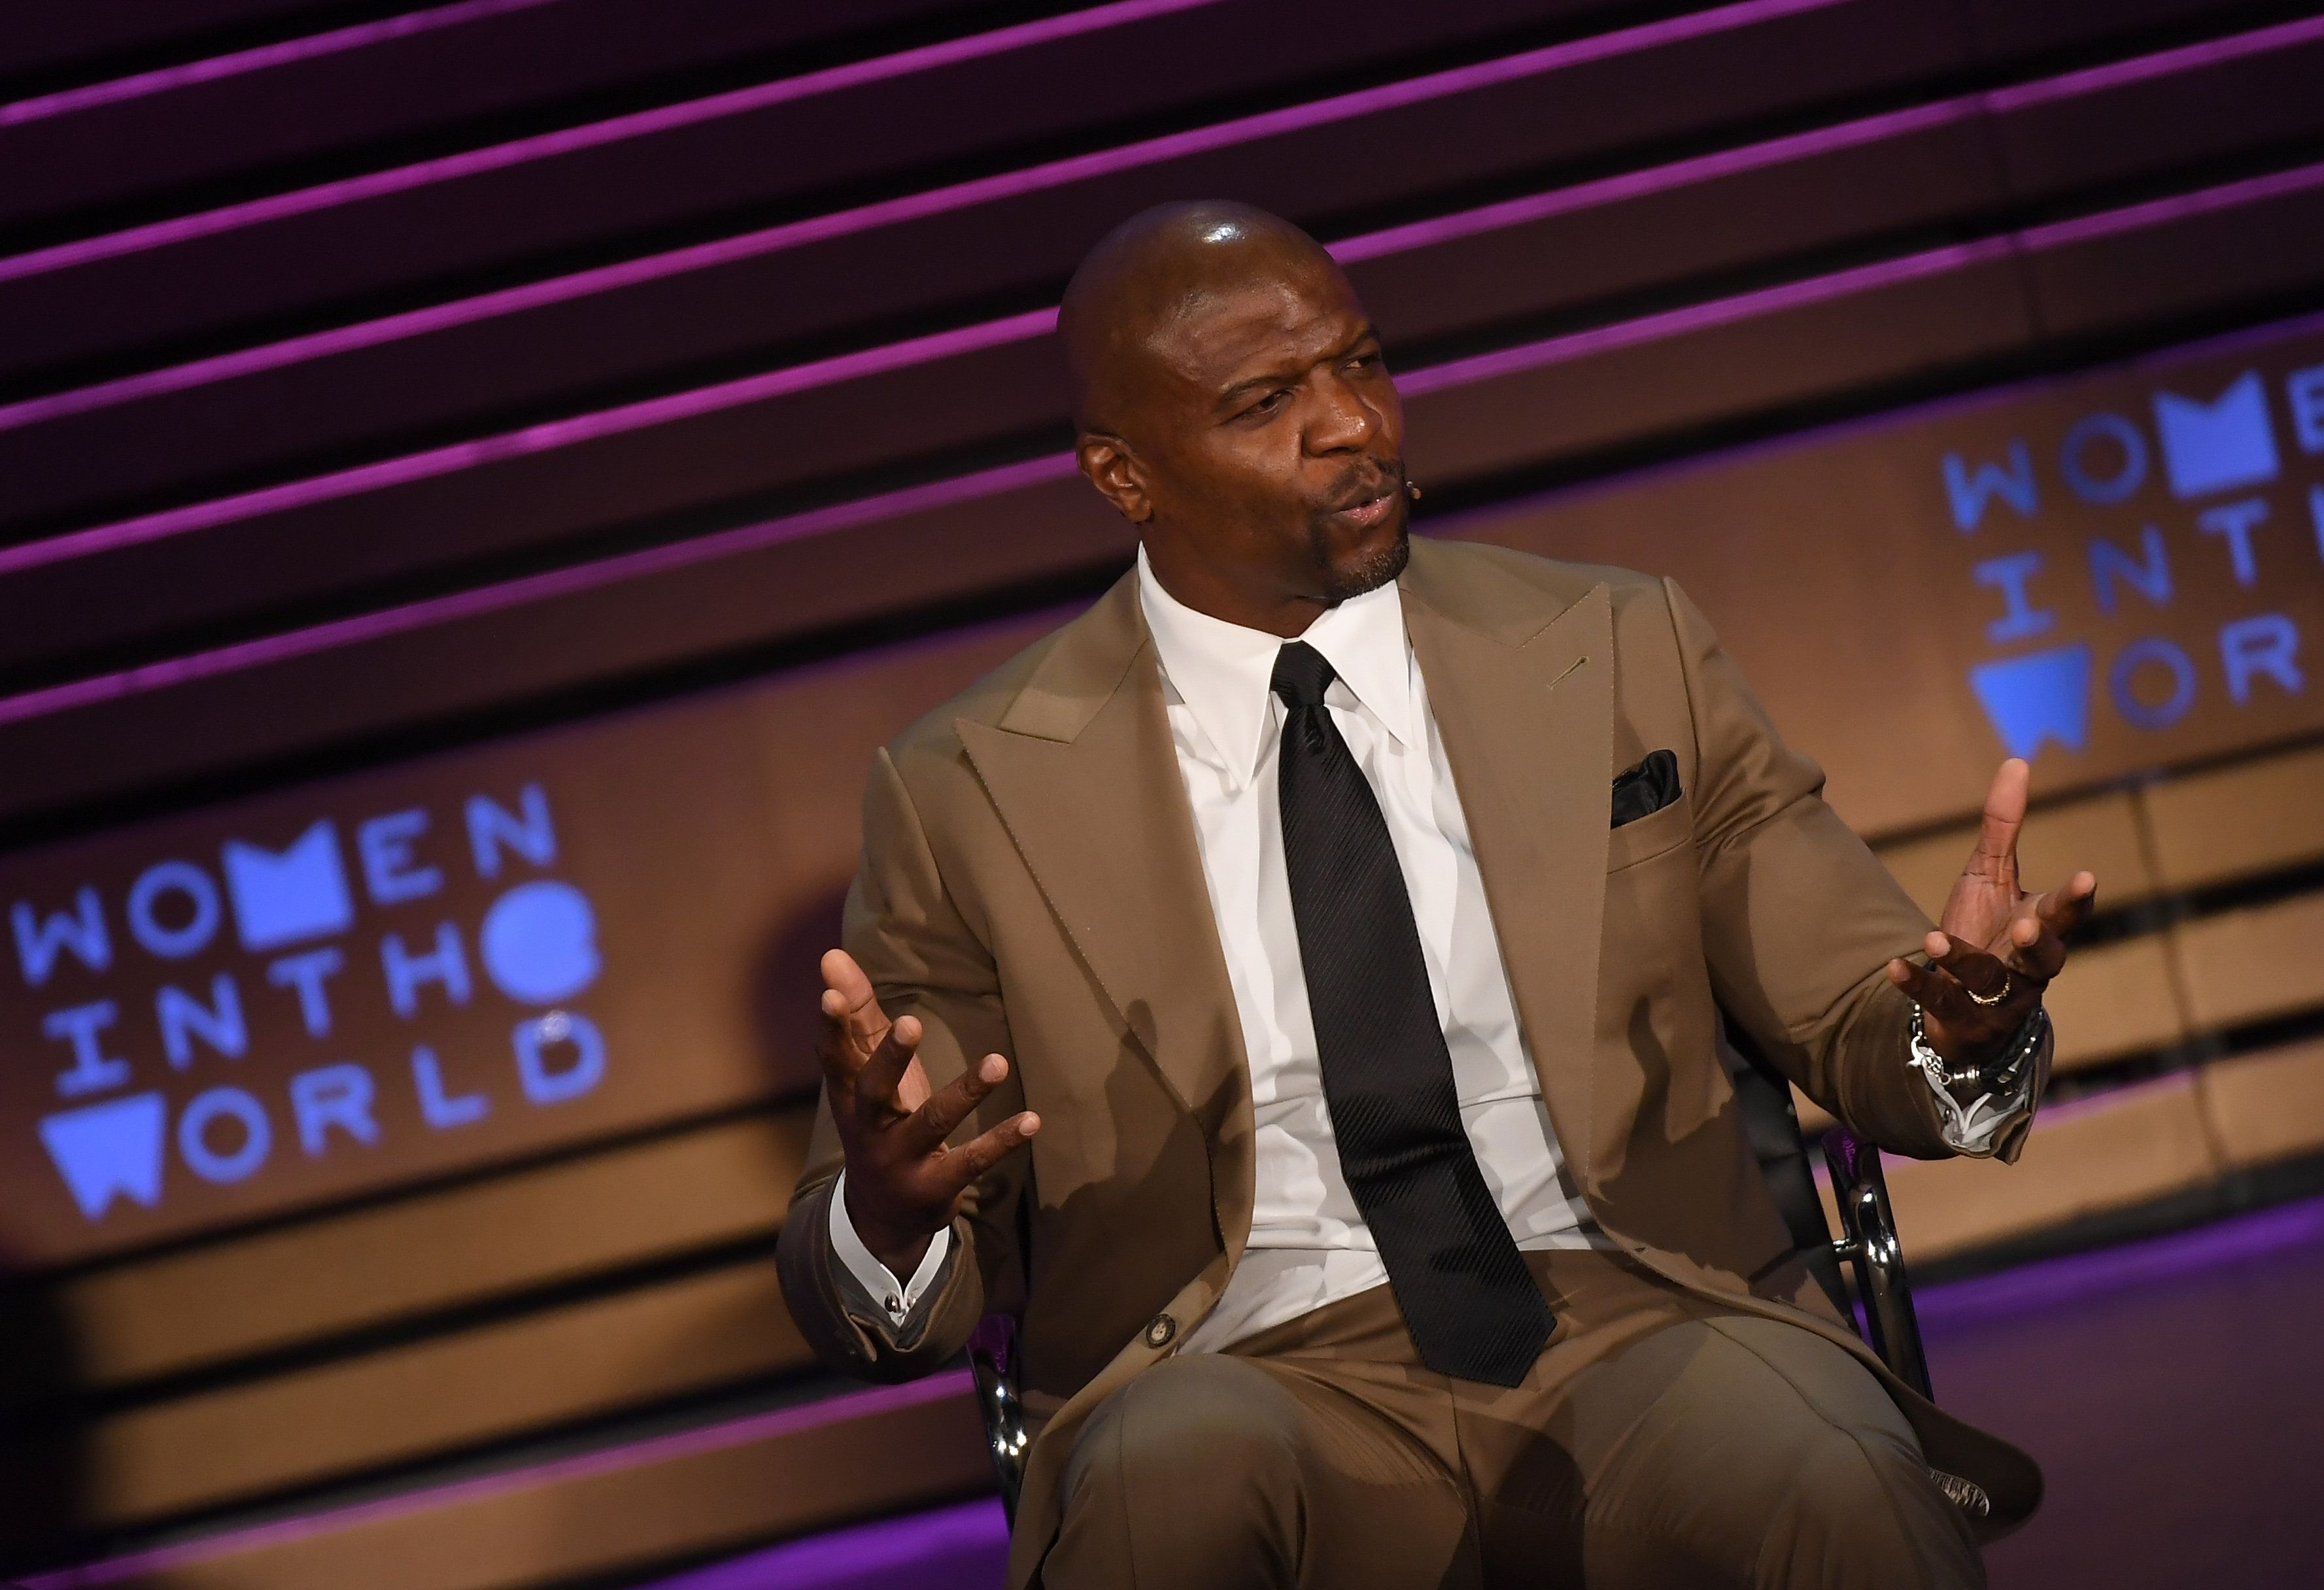 Actor and Activist Terry Crews speaks at the Women in the World Summit on April 14,  2018 in New York City. / AFP PHOTO / ANGELA WEISS        (Photo credit should read ANGELA WEISS/AFP/Getty Images)